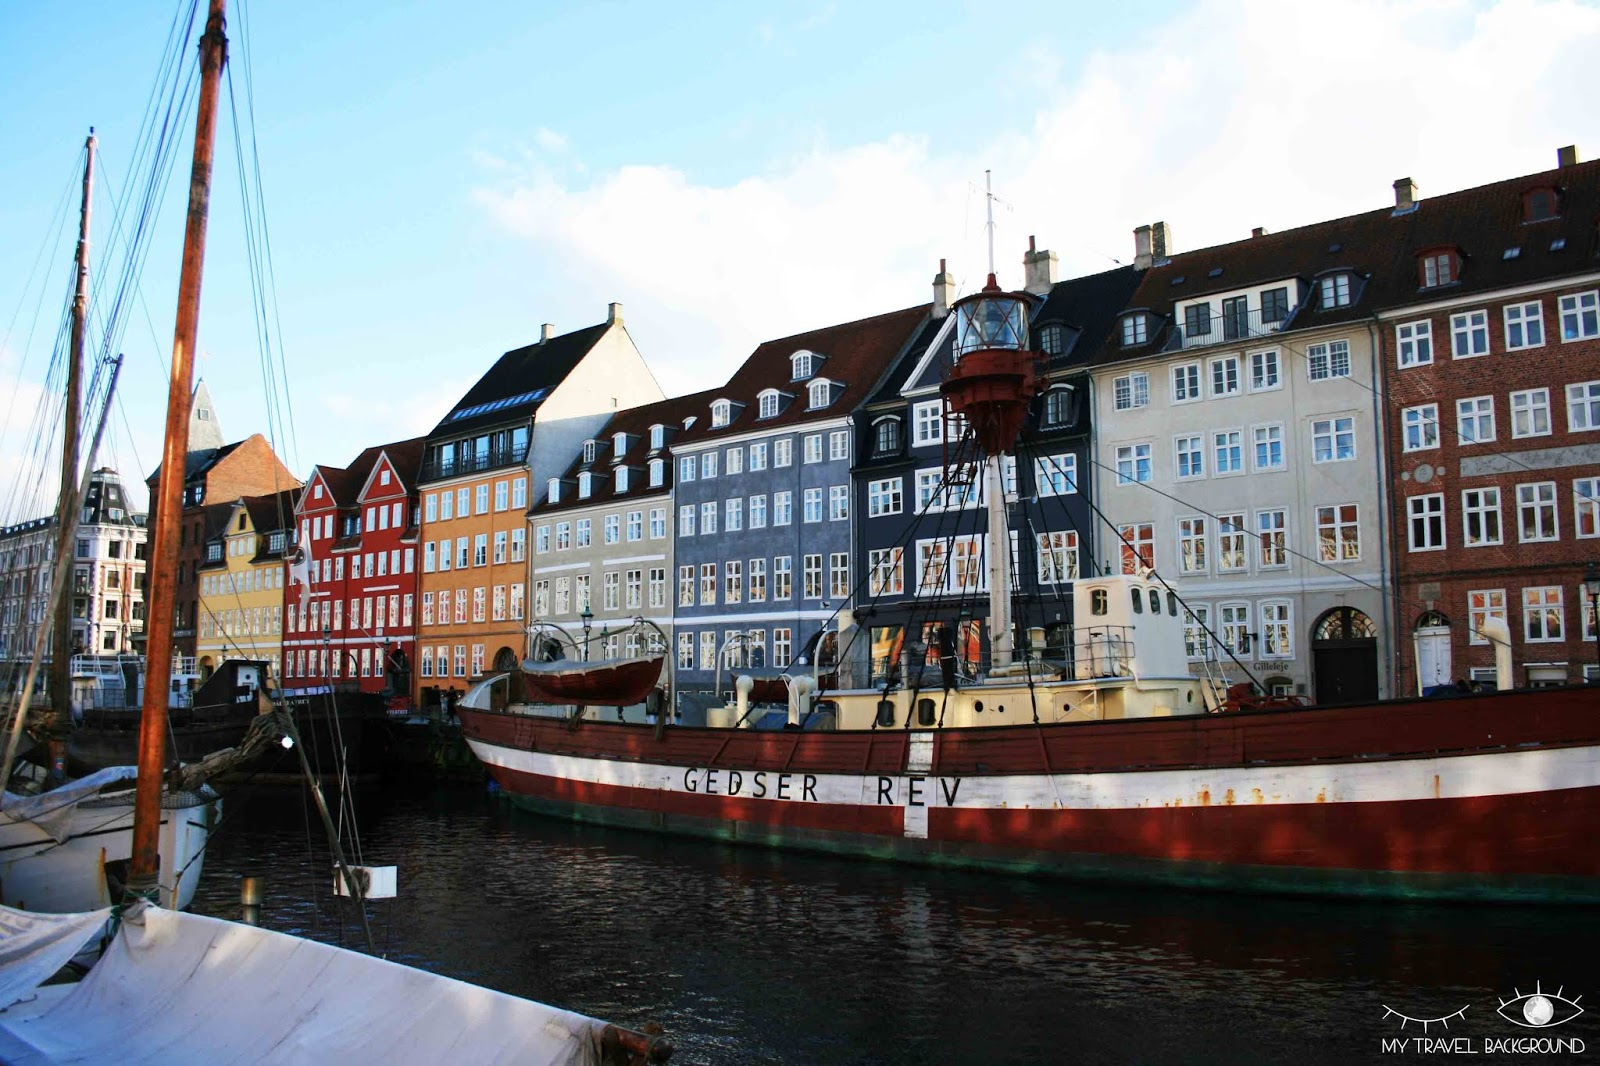 My Travel Background : road trip de 10 jours autour de la mer baltique : Danemark, Finlande, Estonie - Nyhavn, Copenhague, Danemark